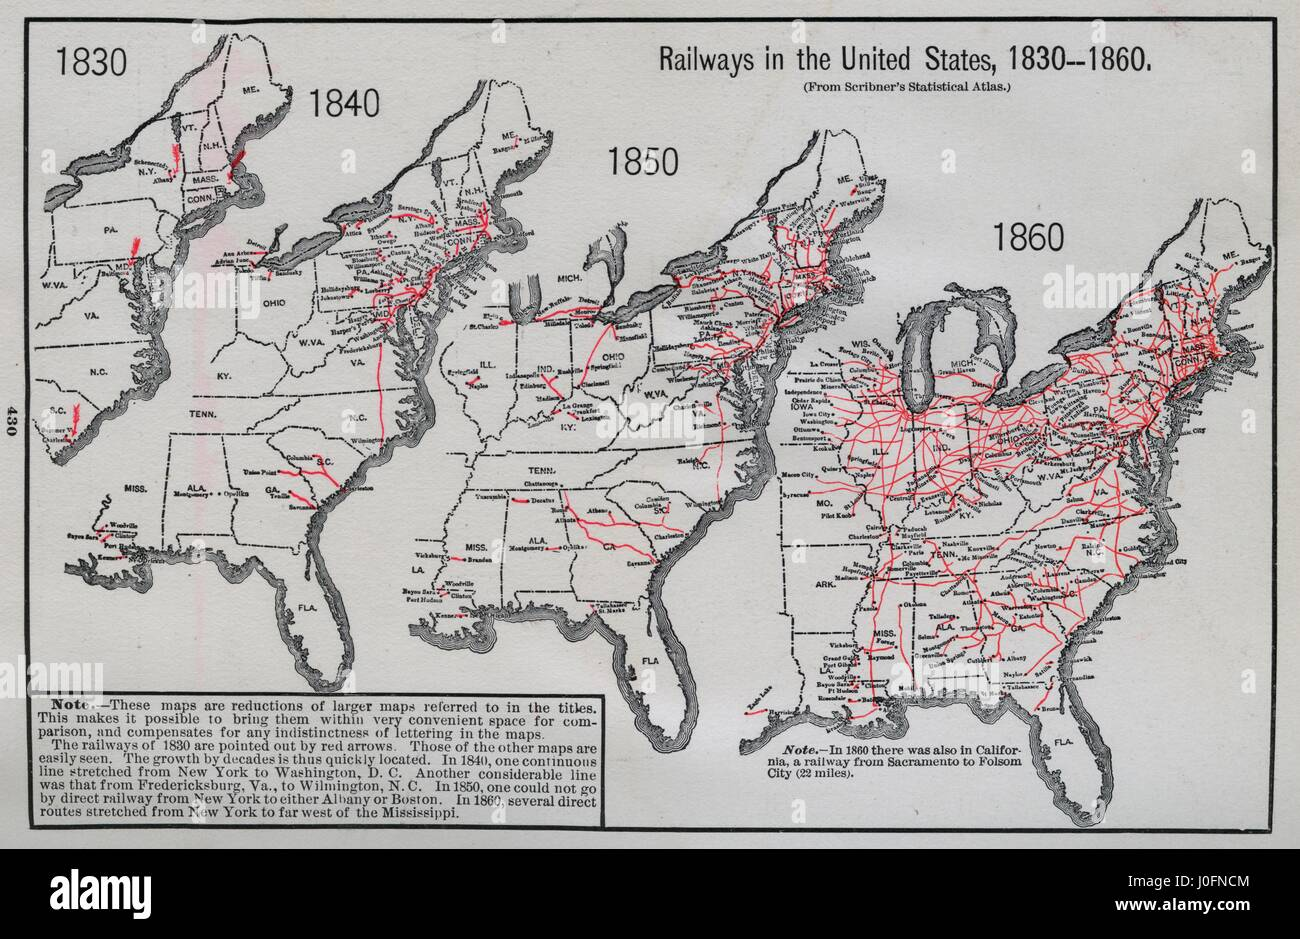 Railways In The United States 1830 1840 1850 And 1860 A Map - Us-map-in-1840